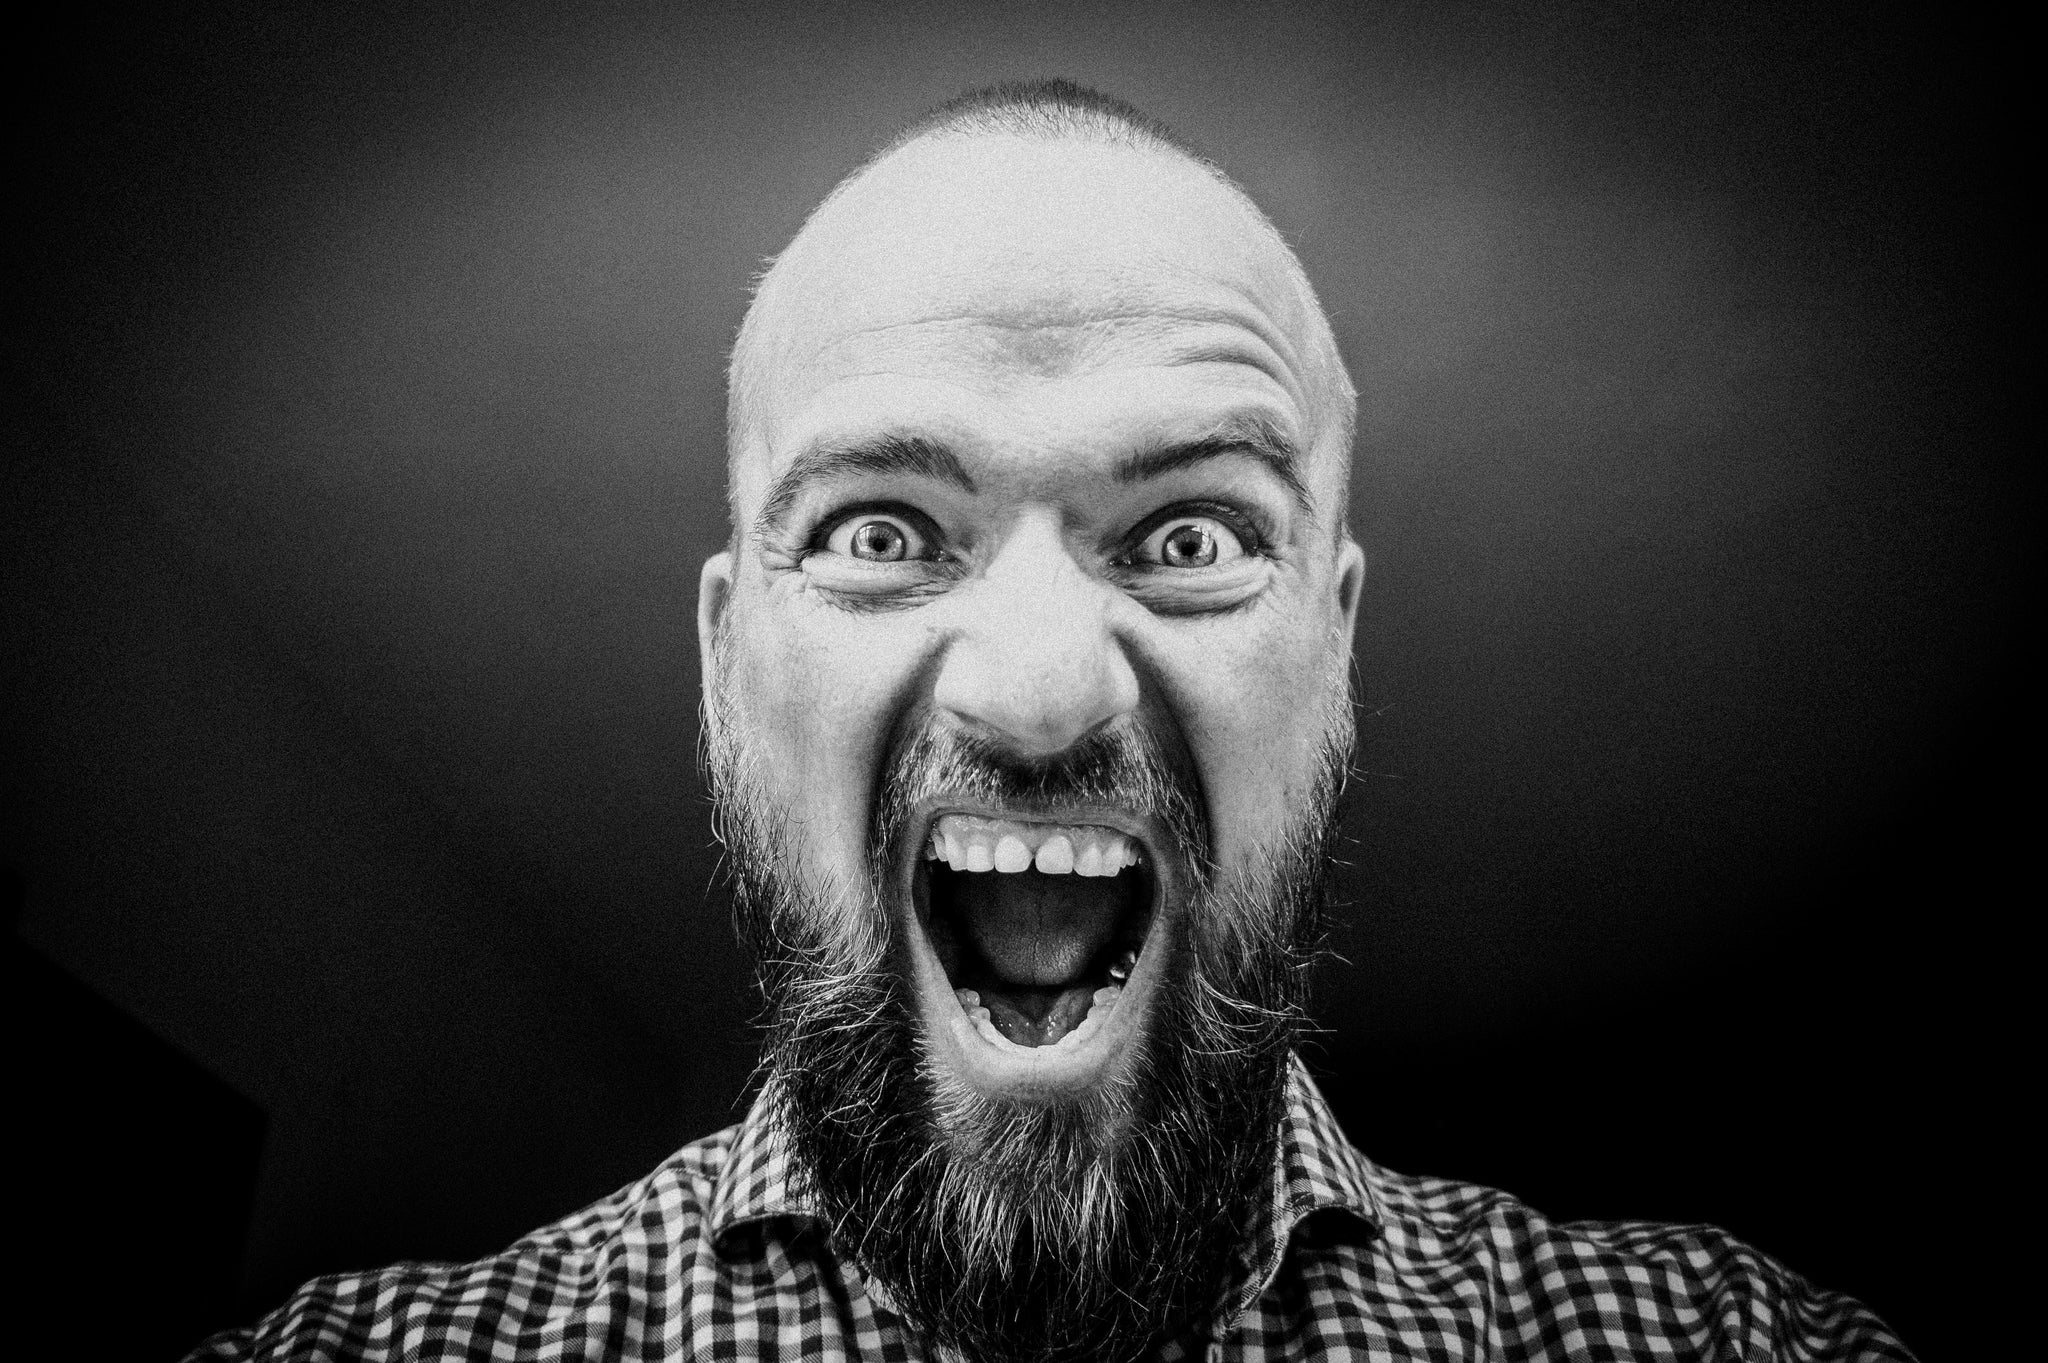 Bearded, bald man shouting, for Autobrush